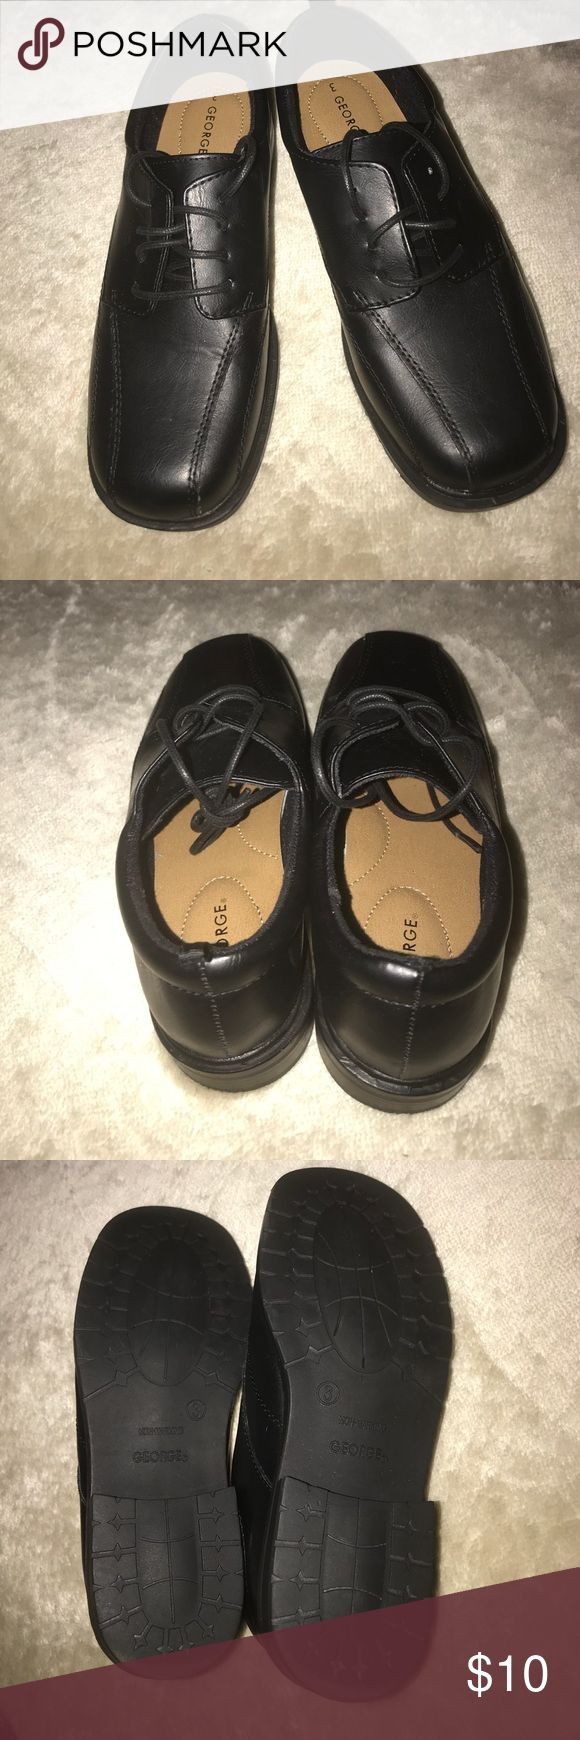 Boy's, Non-Marking Rubber Sole, Dress Shoes Worn once for short time! So look brand new! Nice black, non-marking, dress shoes for boys! Rubber soles, size 3!! George Shoes Dress Shoes